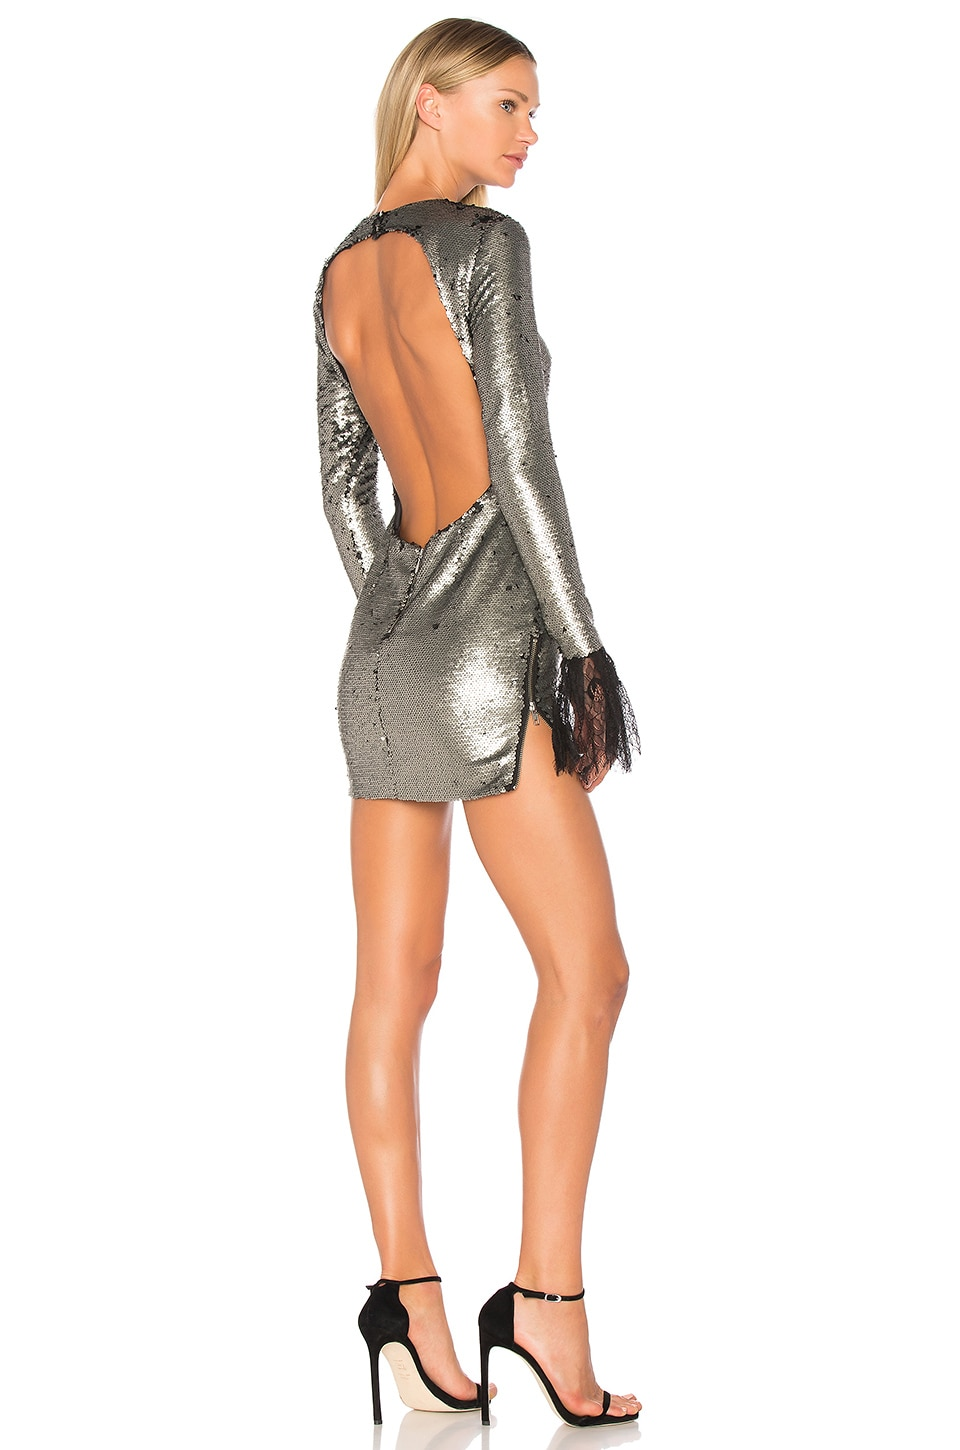 VATANIKA Backless Lace-Trimmed Mini Dress en Matte Grey